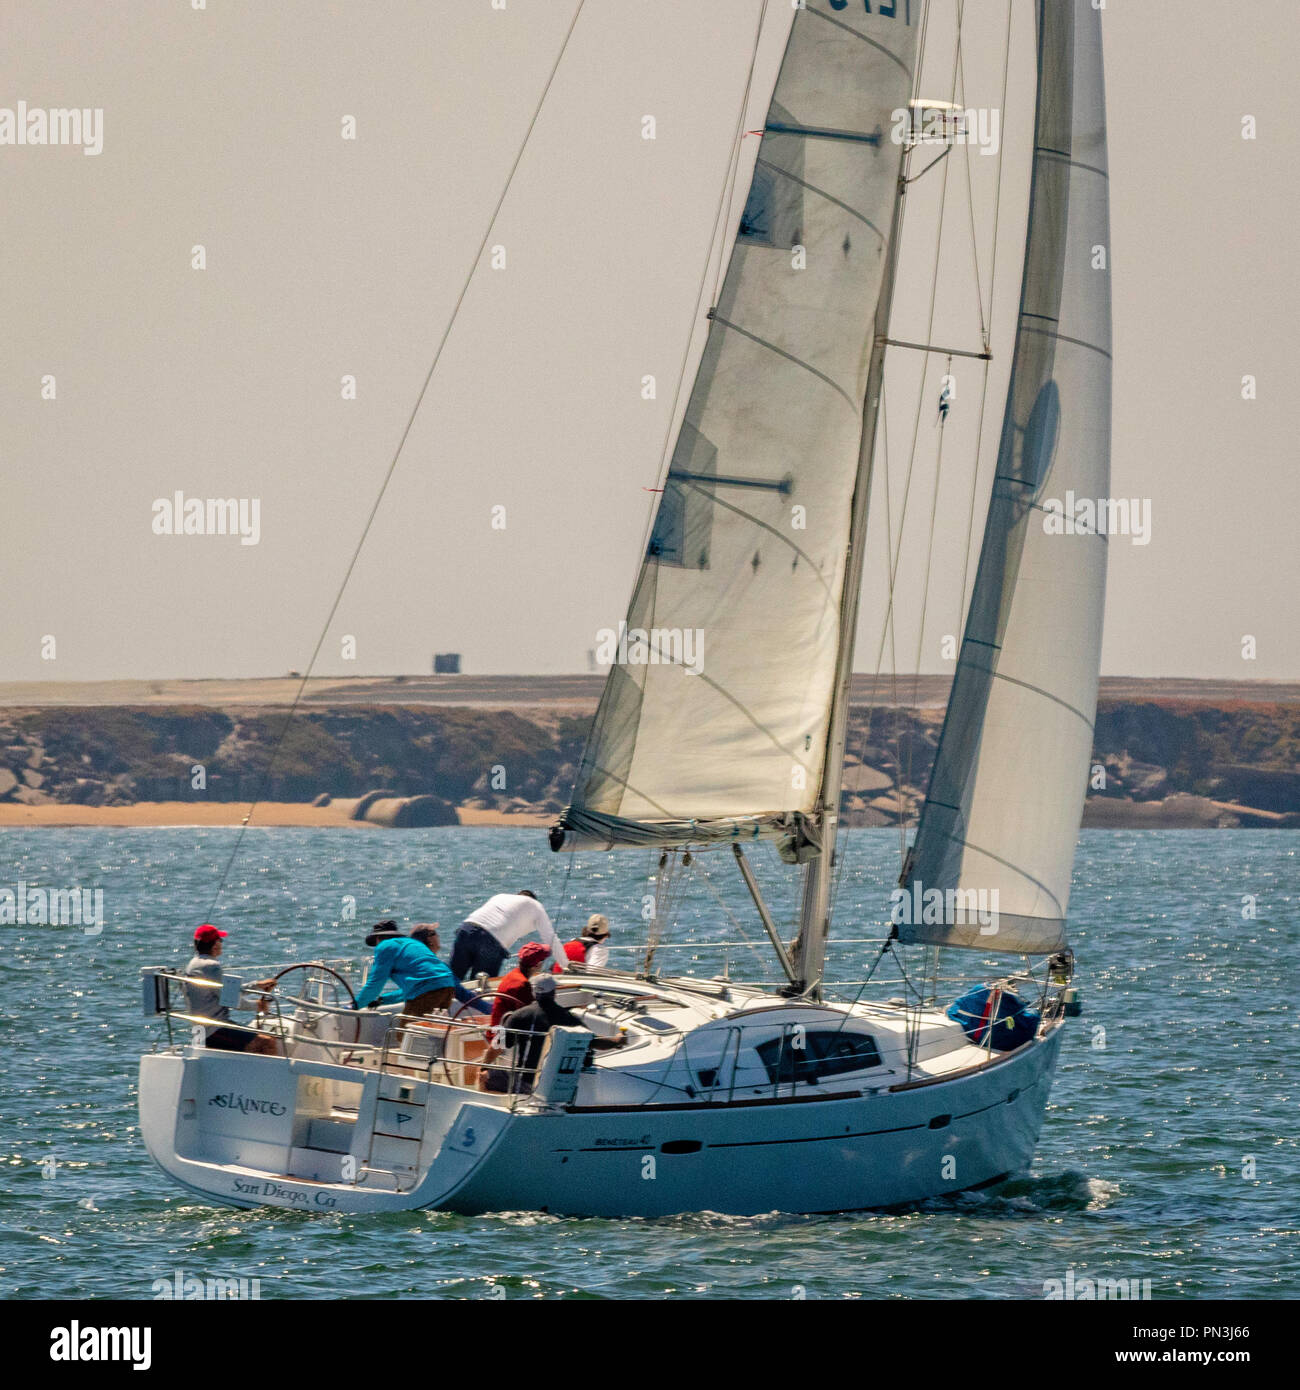 The team is working to trim the yacht for best possible performance - Stock Image